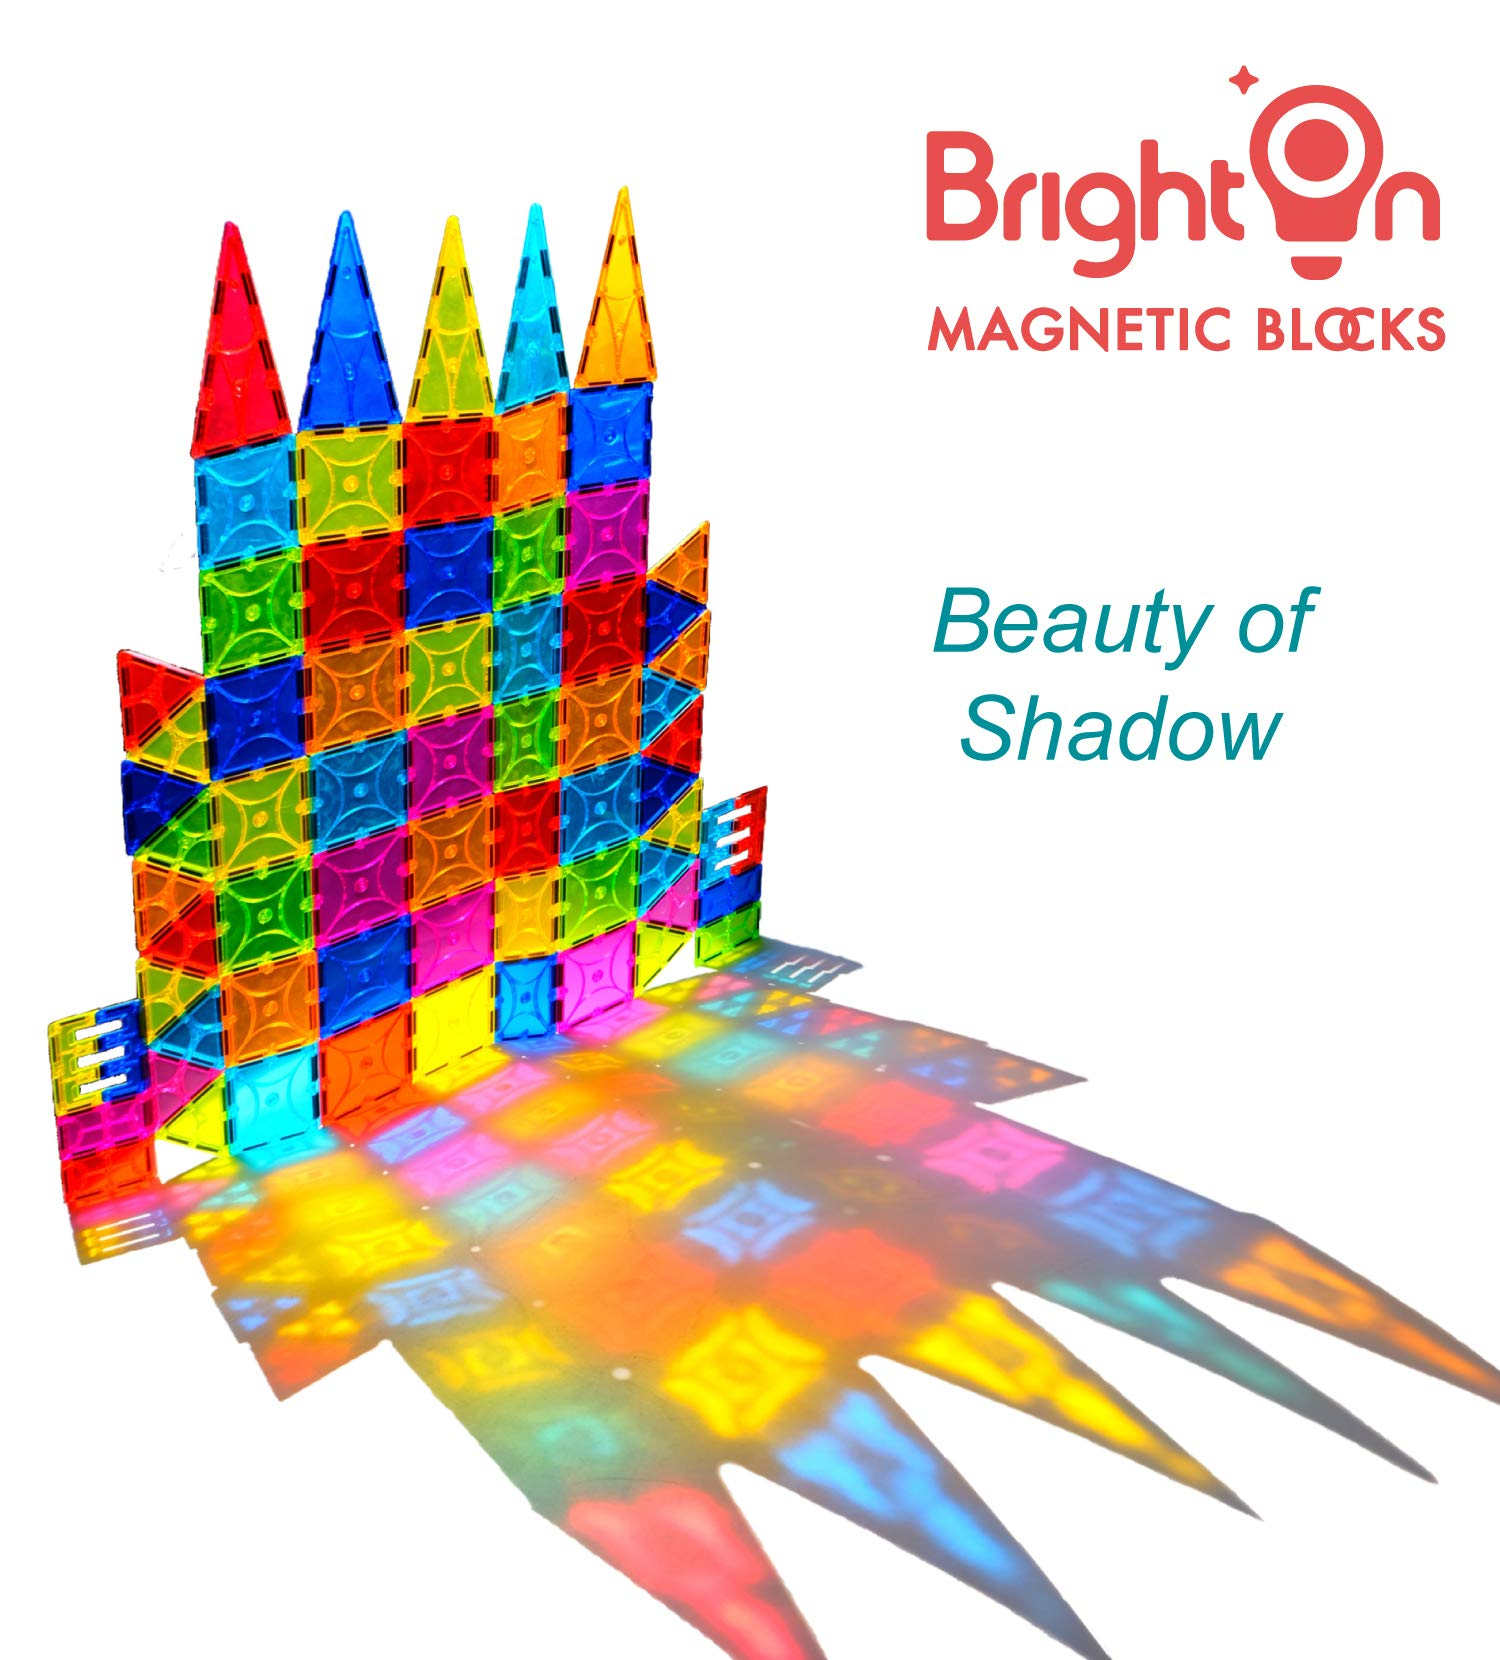 BrightOn Educational Kids Toys Magnetic Building Blocks, Creative Toys 3D Magnetic Blocks for Kids, Imagination Magnets Building Tiles for Children 105Pcs by BrightOn (Image #2)